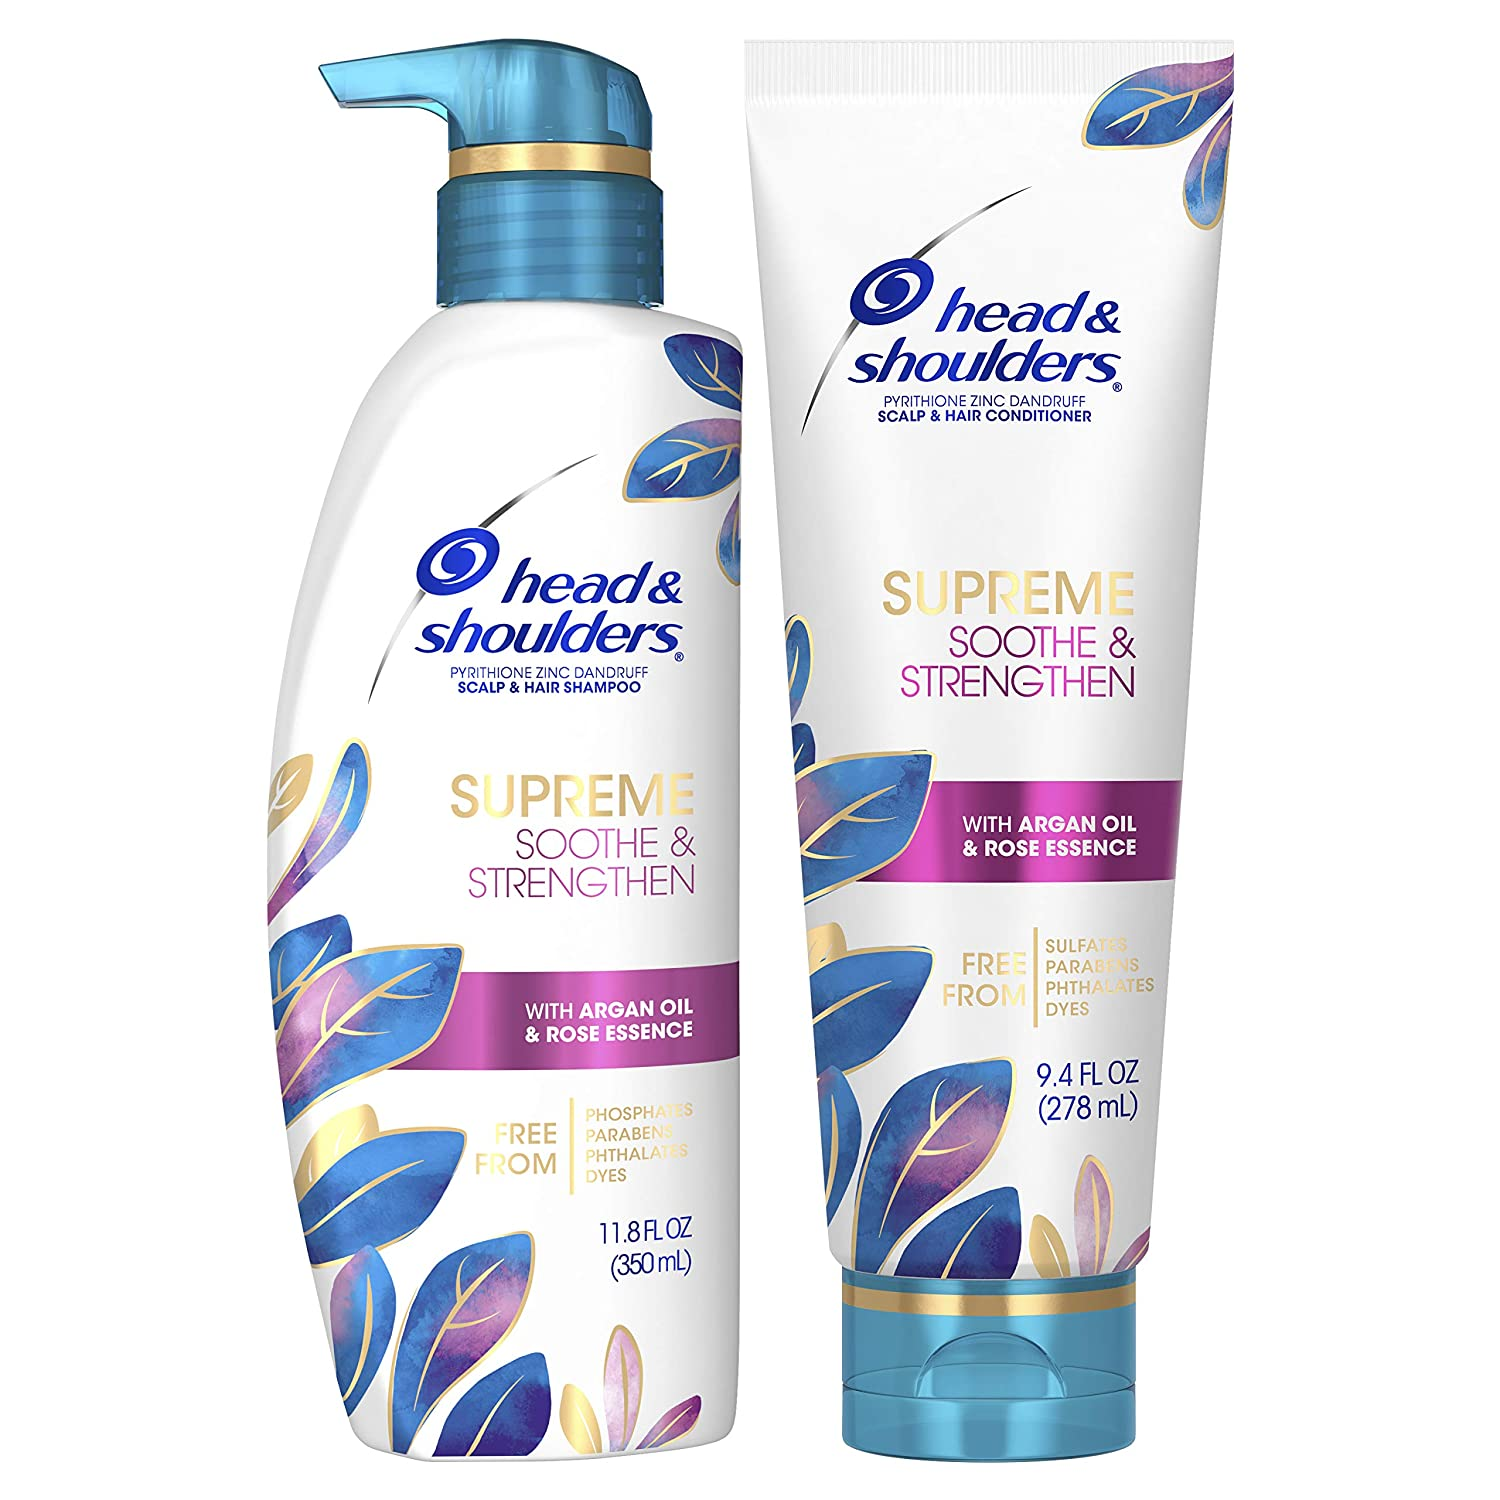 Head & Shoulders Supreme, Scalp Care and Dandruff Treatment Shampoo and Conditioner Bundle, with Argan Oil and Rose Essence, Soothe and Strengthen Hair and Scalp, 11.8 Fl Oz